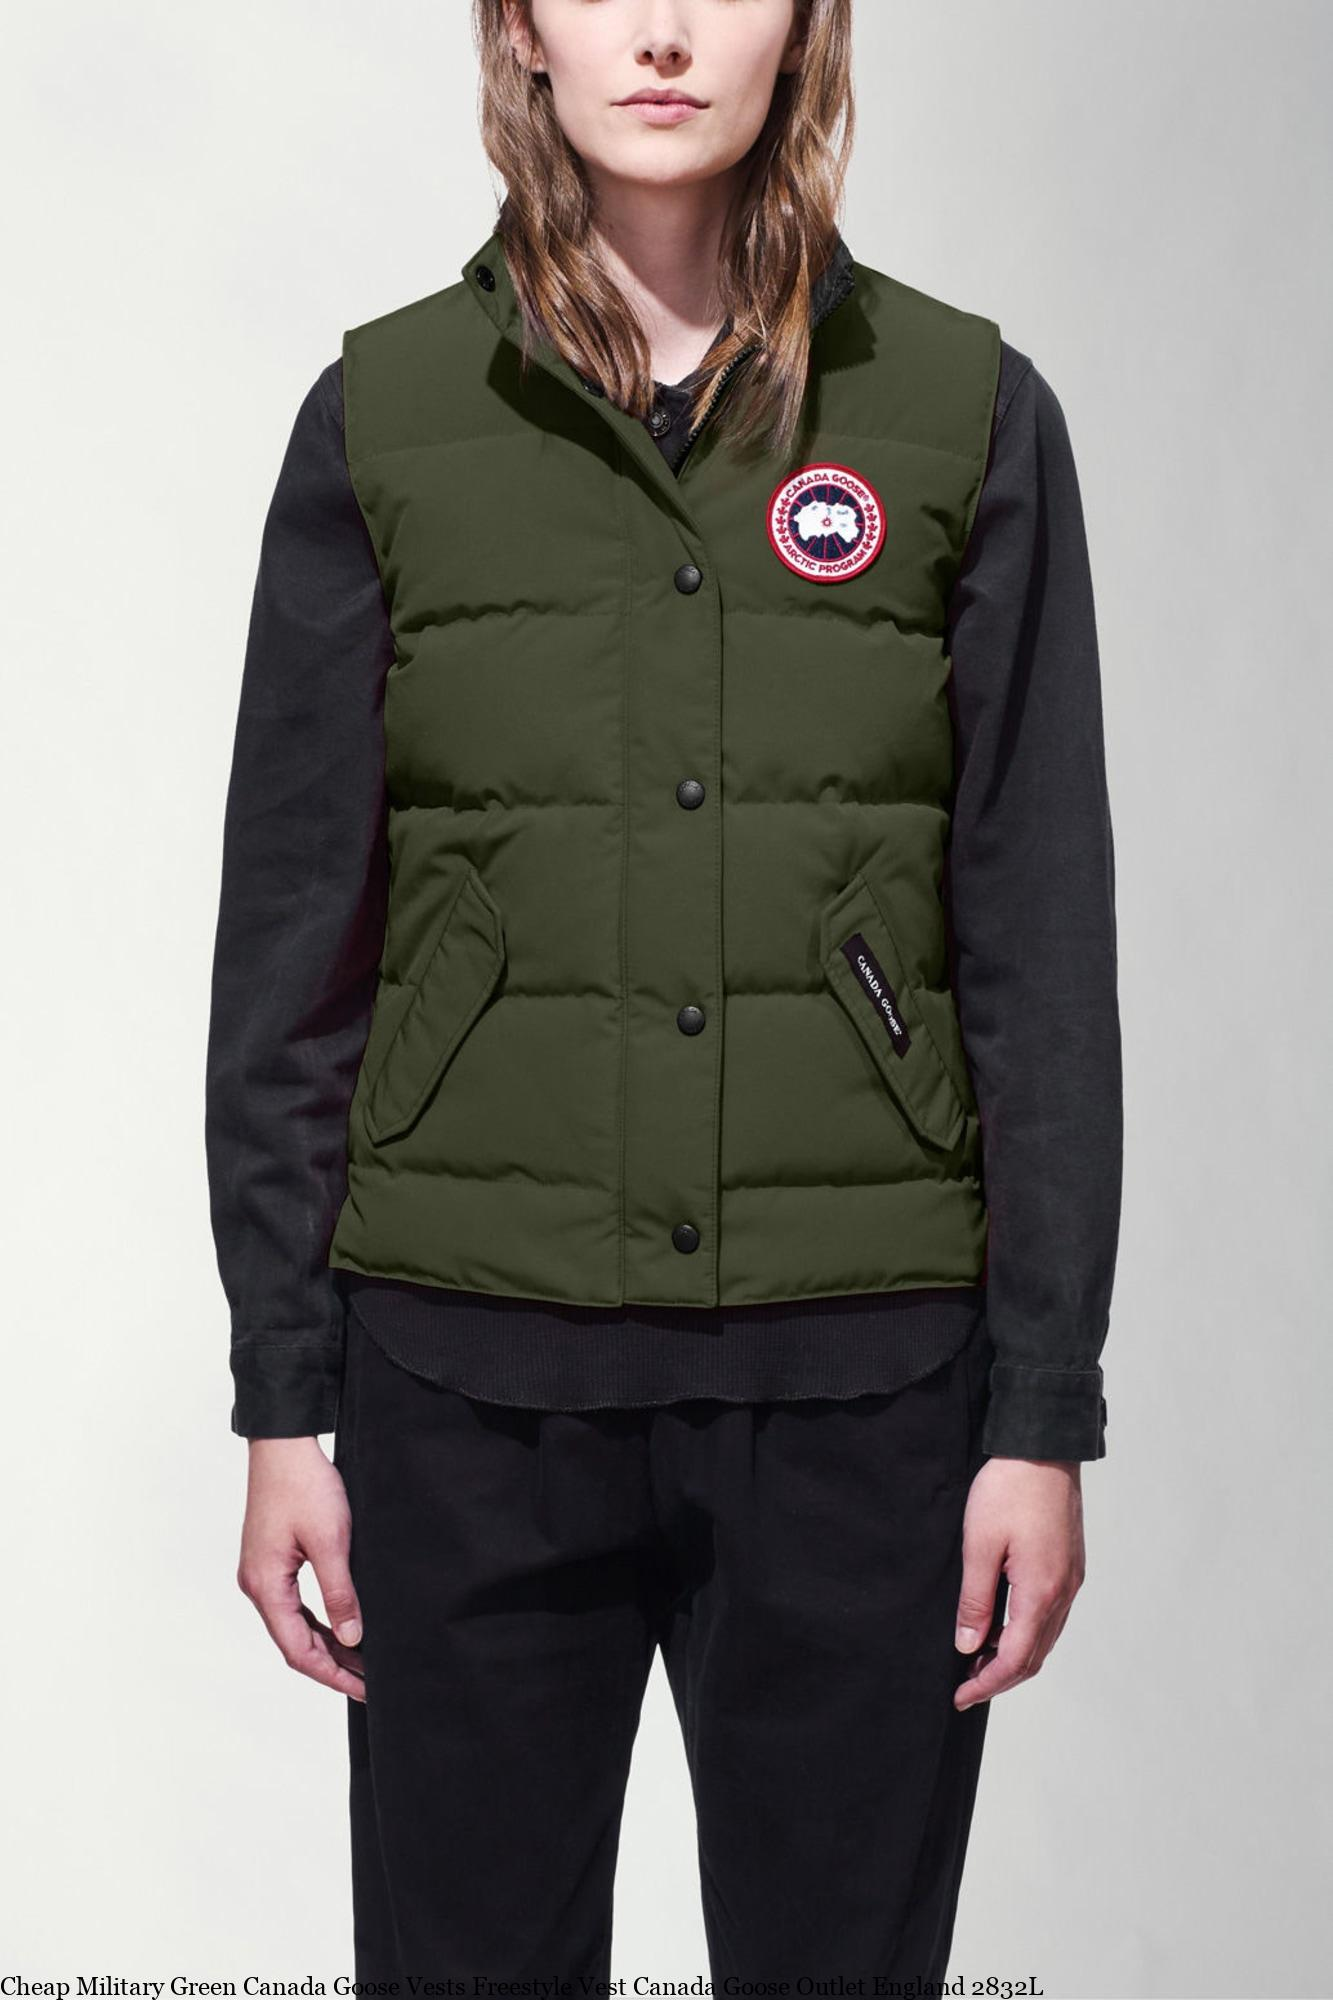 Cheap Military Green Canada Goose Vests Freestyle Vest Canada Goose Outlet  England 2832L – Canada Goose Clearance – Cheap Canada Goose Jackets Outlet  Online ... 16f3ea05274f